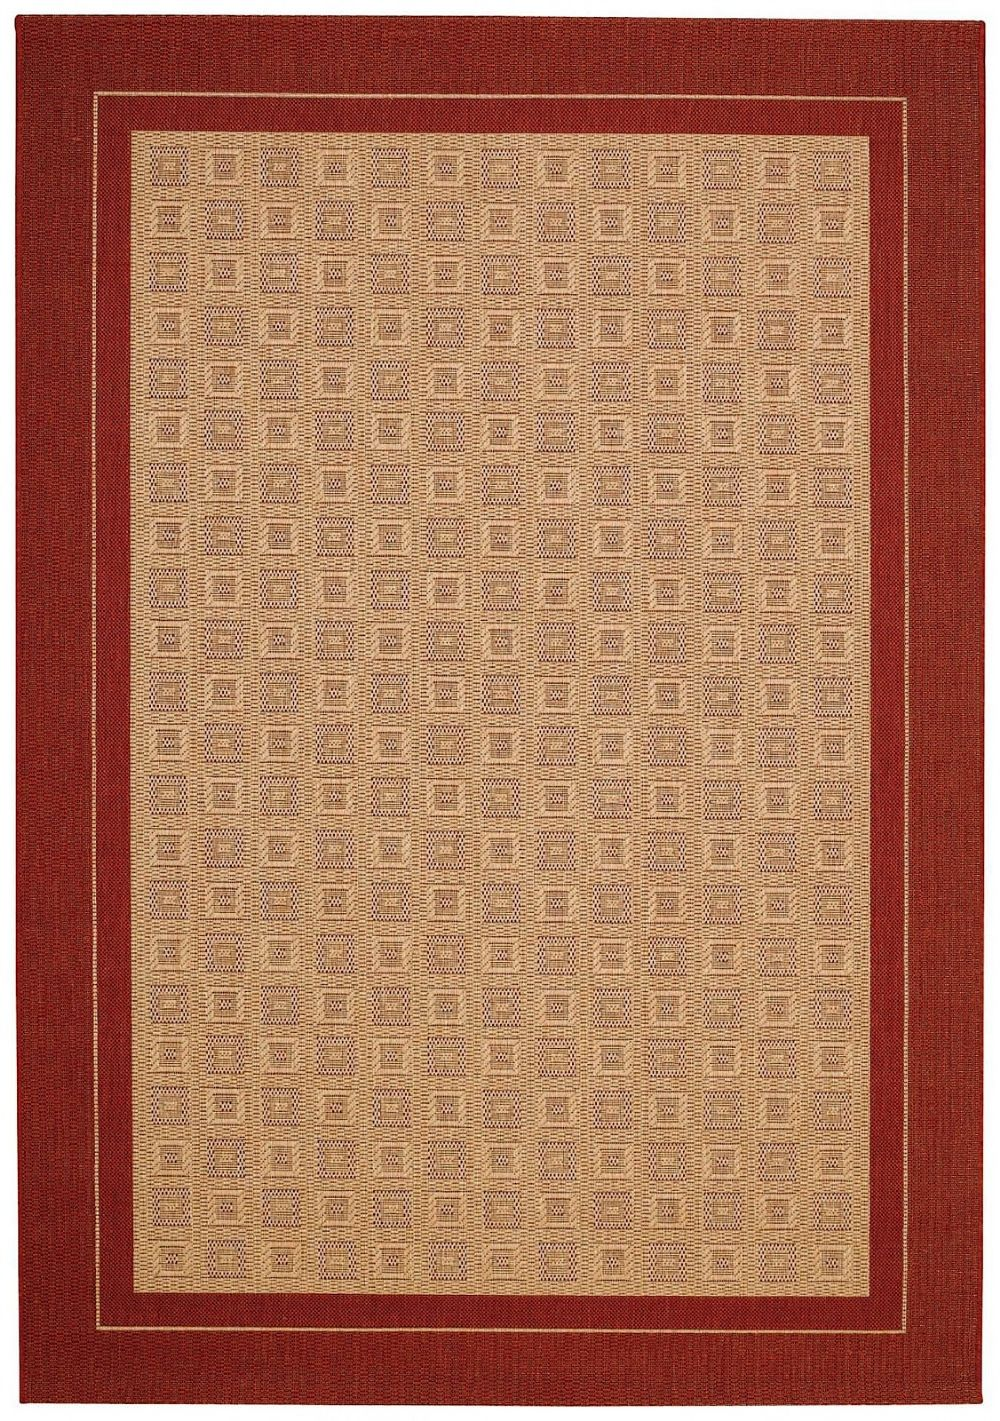 capel springs-tiles contemporary area rug collection